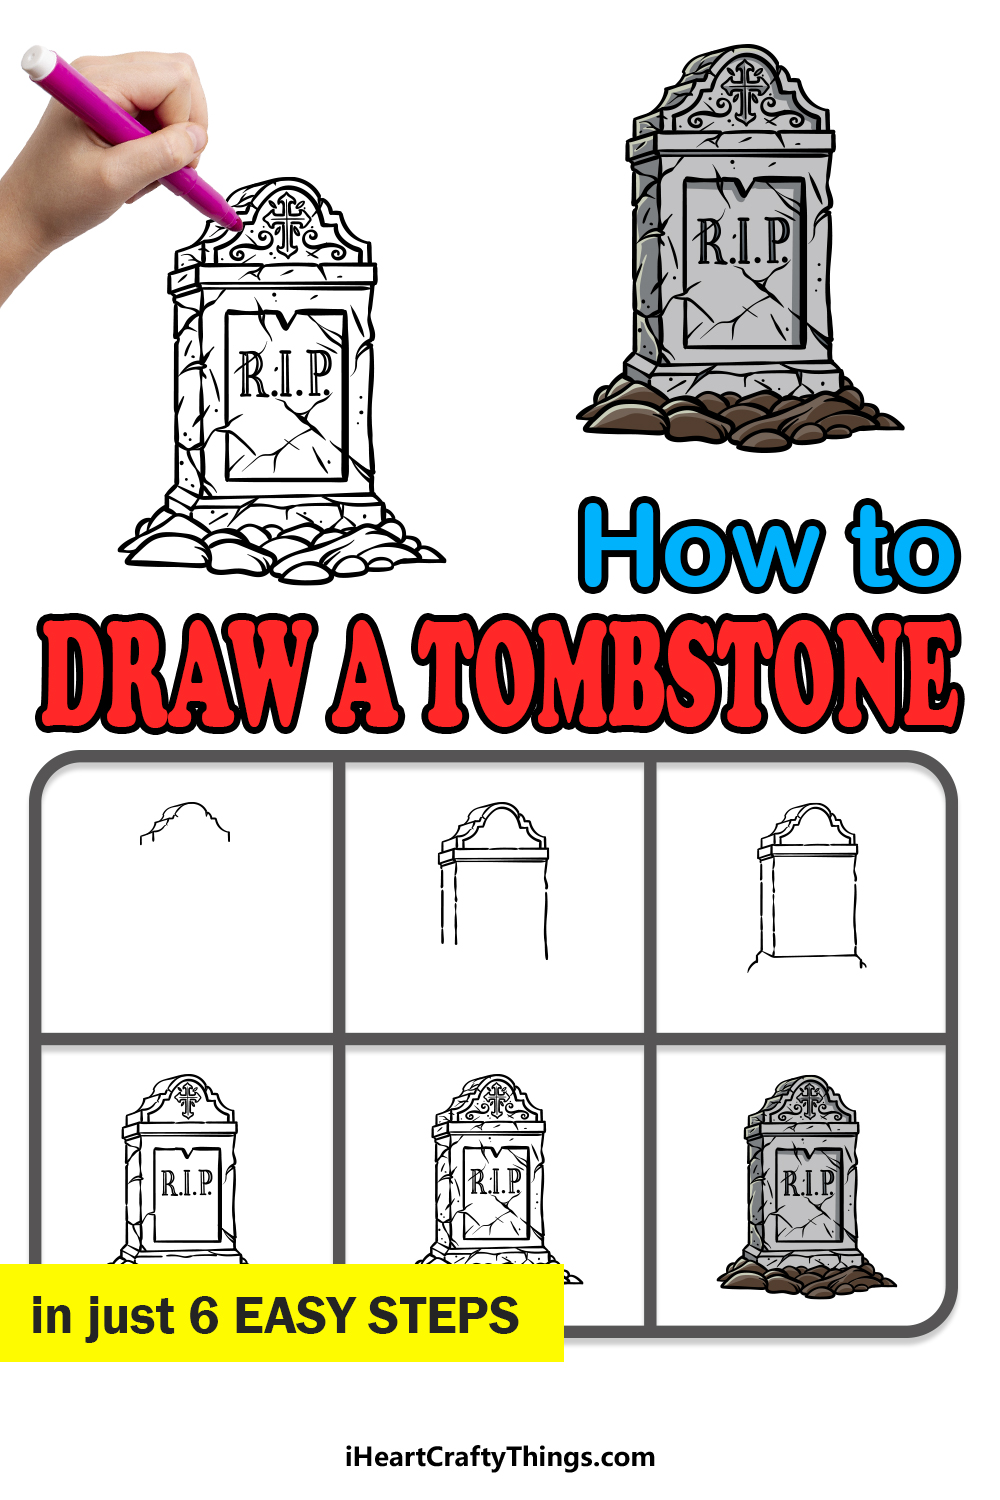 how to draw a tombstone in 6 easy steps